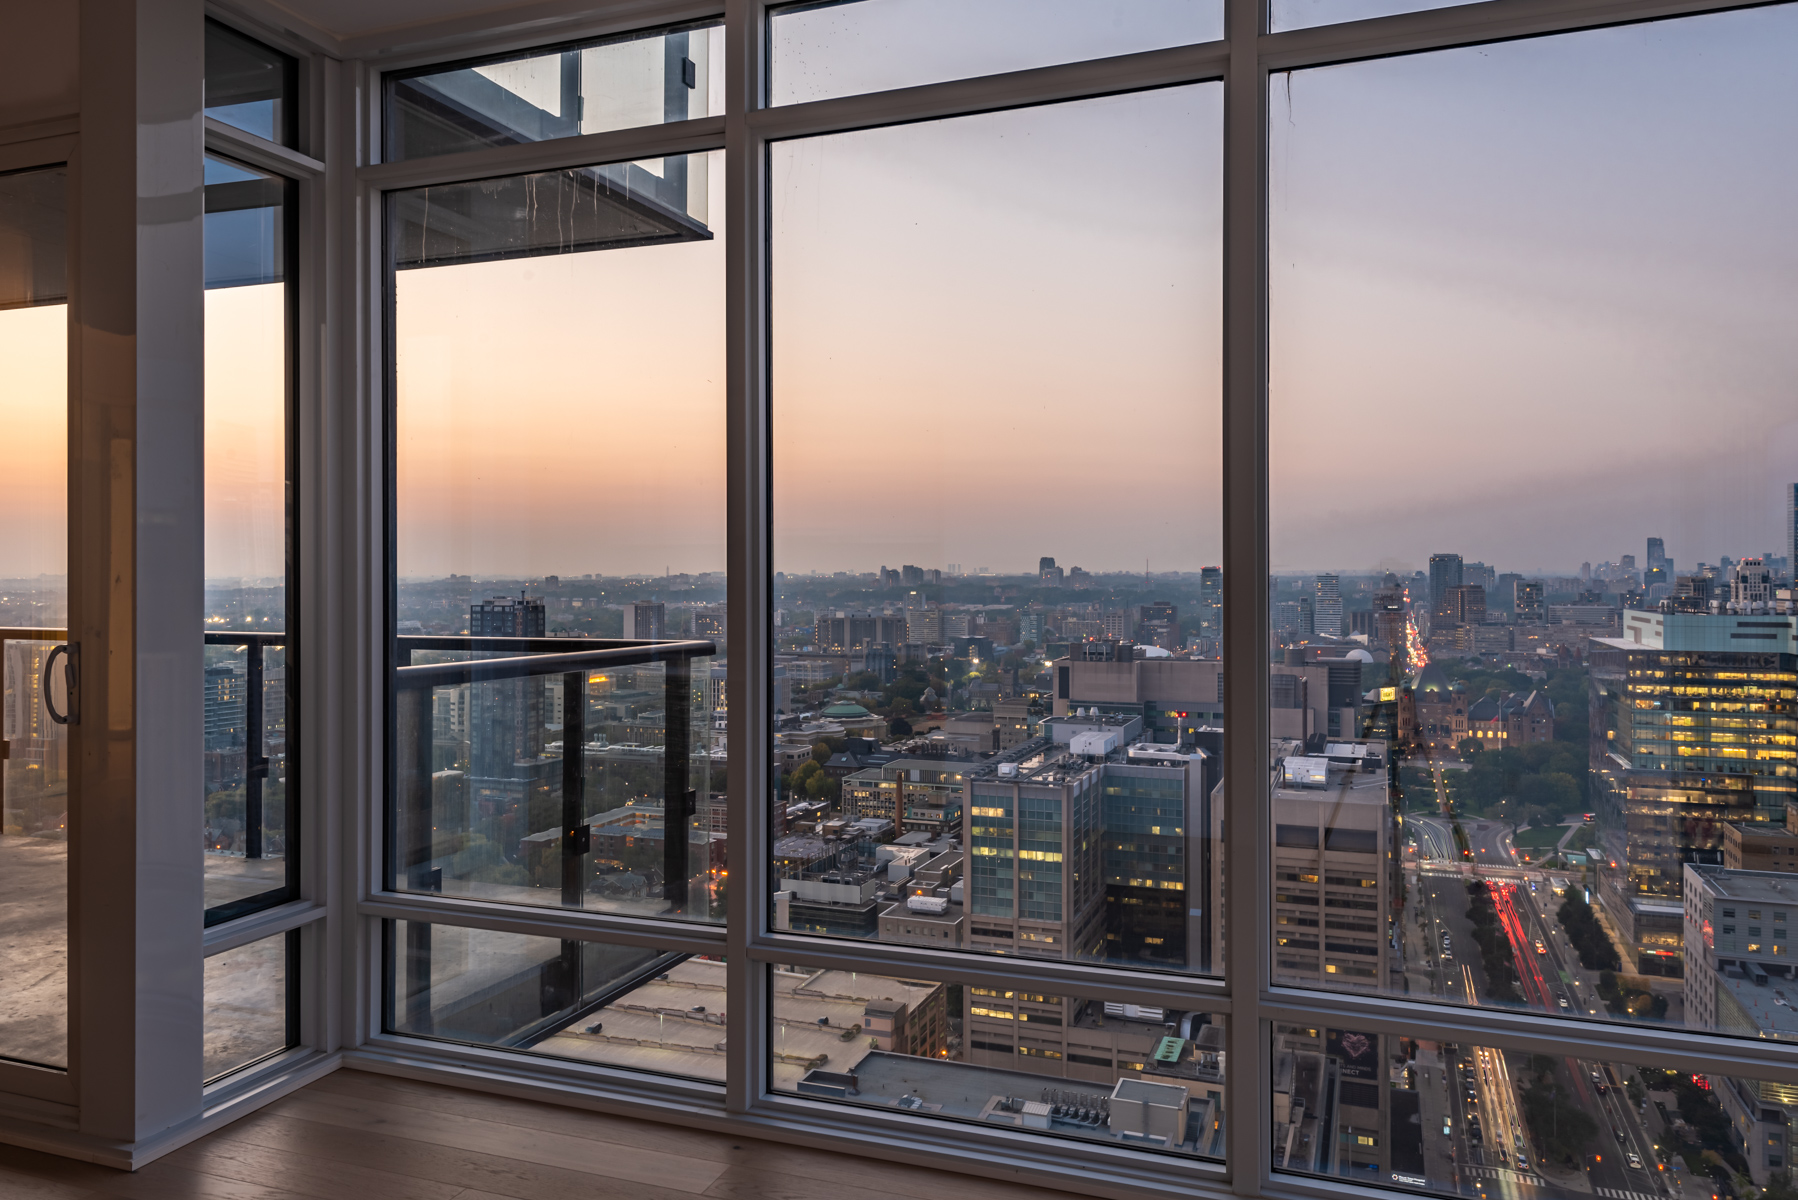 View of Toronto from living room of 488 University Ave showing pinkish sky and city lights.